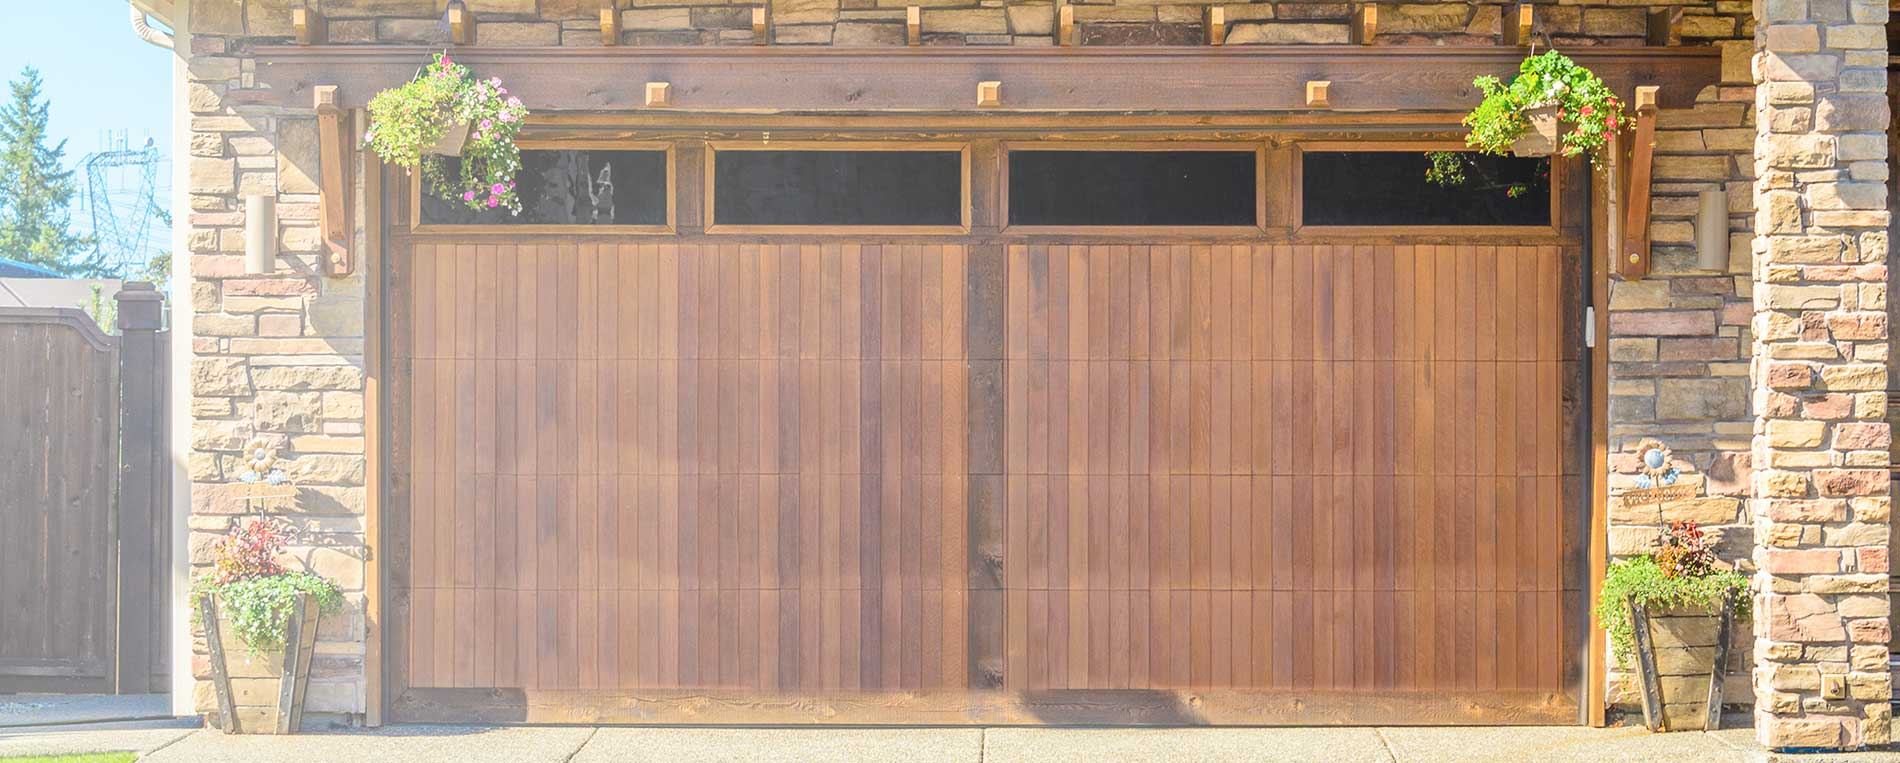 Garage Door Parts Near My Location Replace My Broken Springs Garage Door Repair Conroe Tx